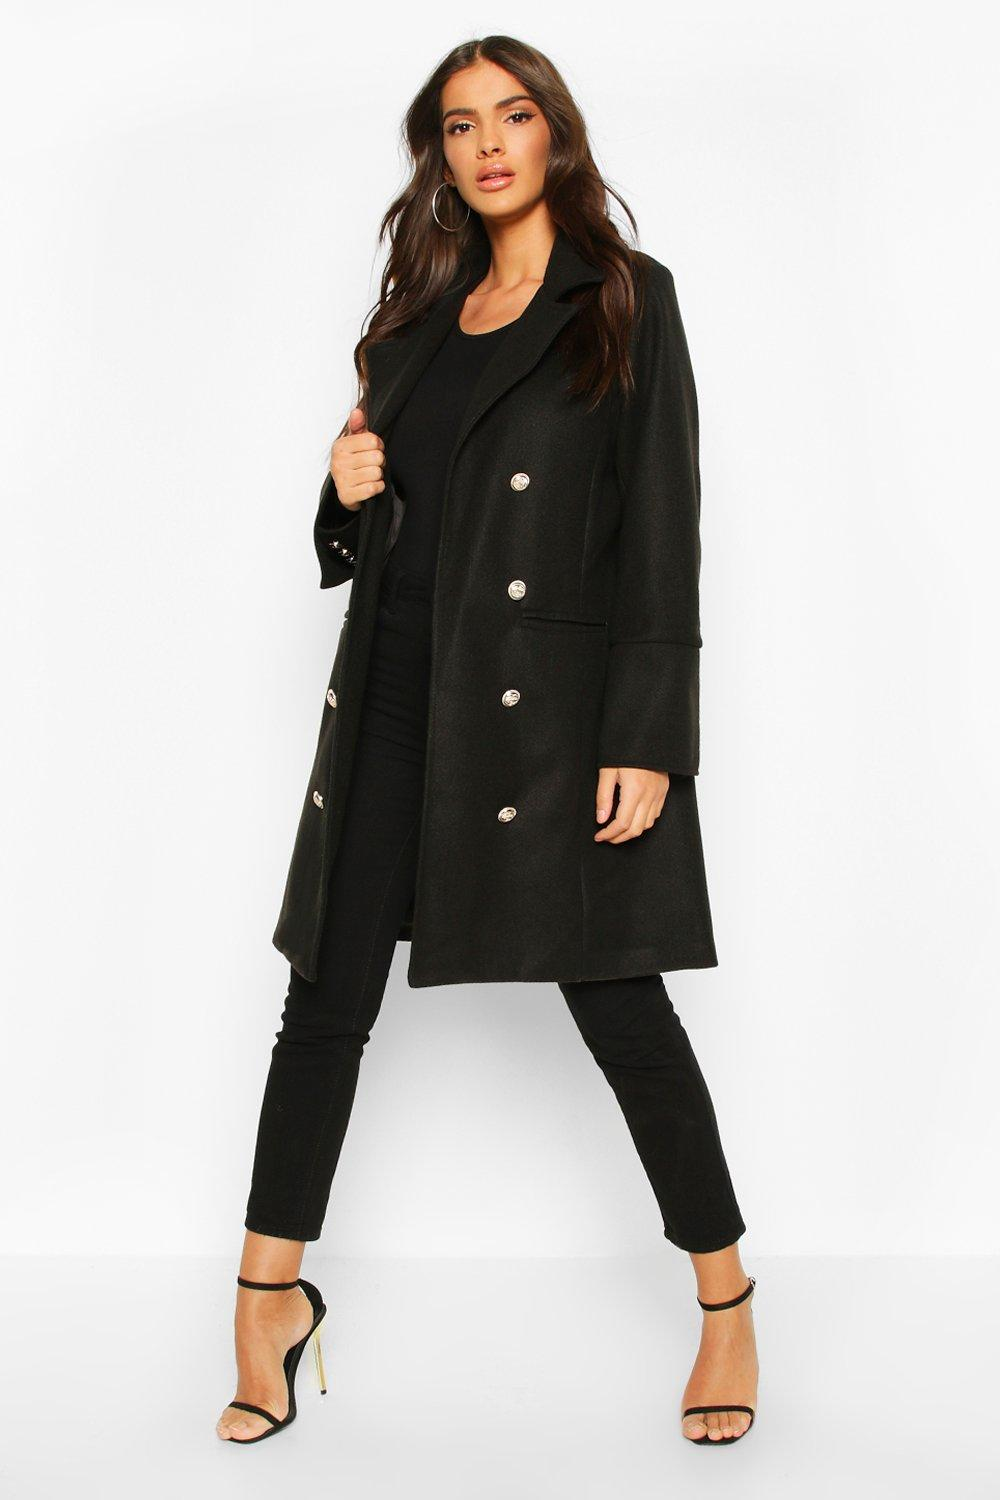 boohoo Womens Military Button Double Breasted Wool Look Coat - Black - 8, Black